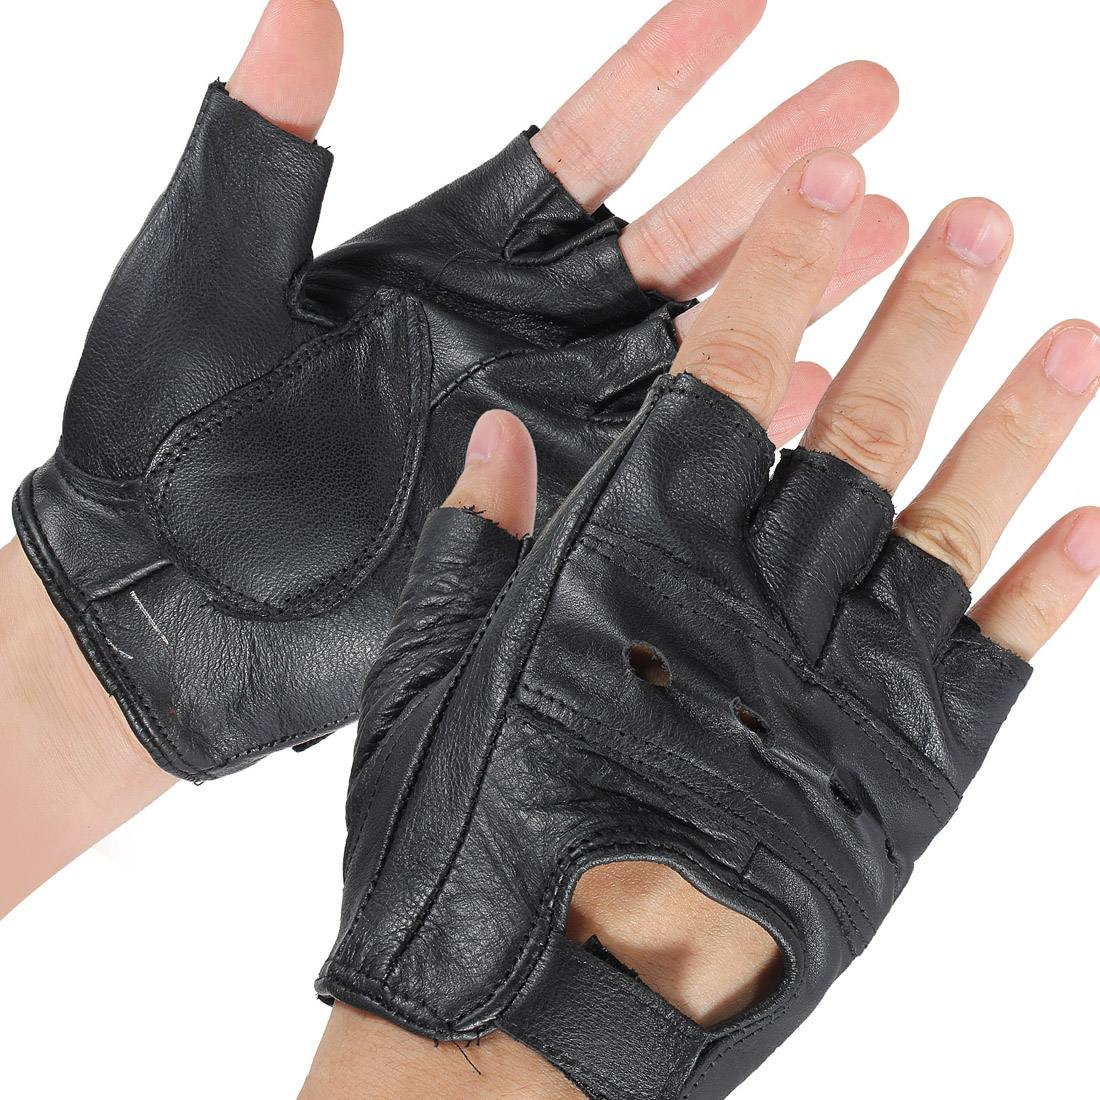 2pcs M Black Medium Fingerless Leather Motorcycle Glove Vented Cowhide Multi-use Half Finger Leather2pcs M Black Medium Fingerless Leather Motorcycle Glove Vented Cowhide Multi-use Half Finger Leather